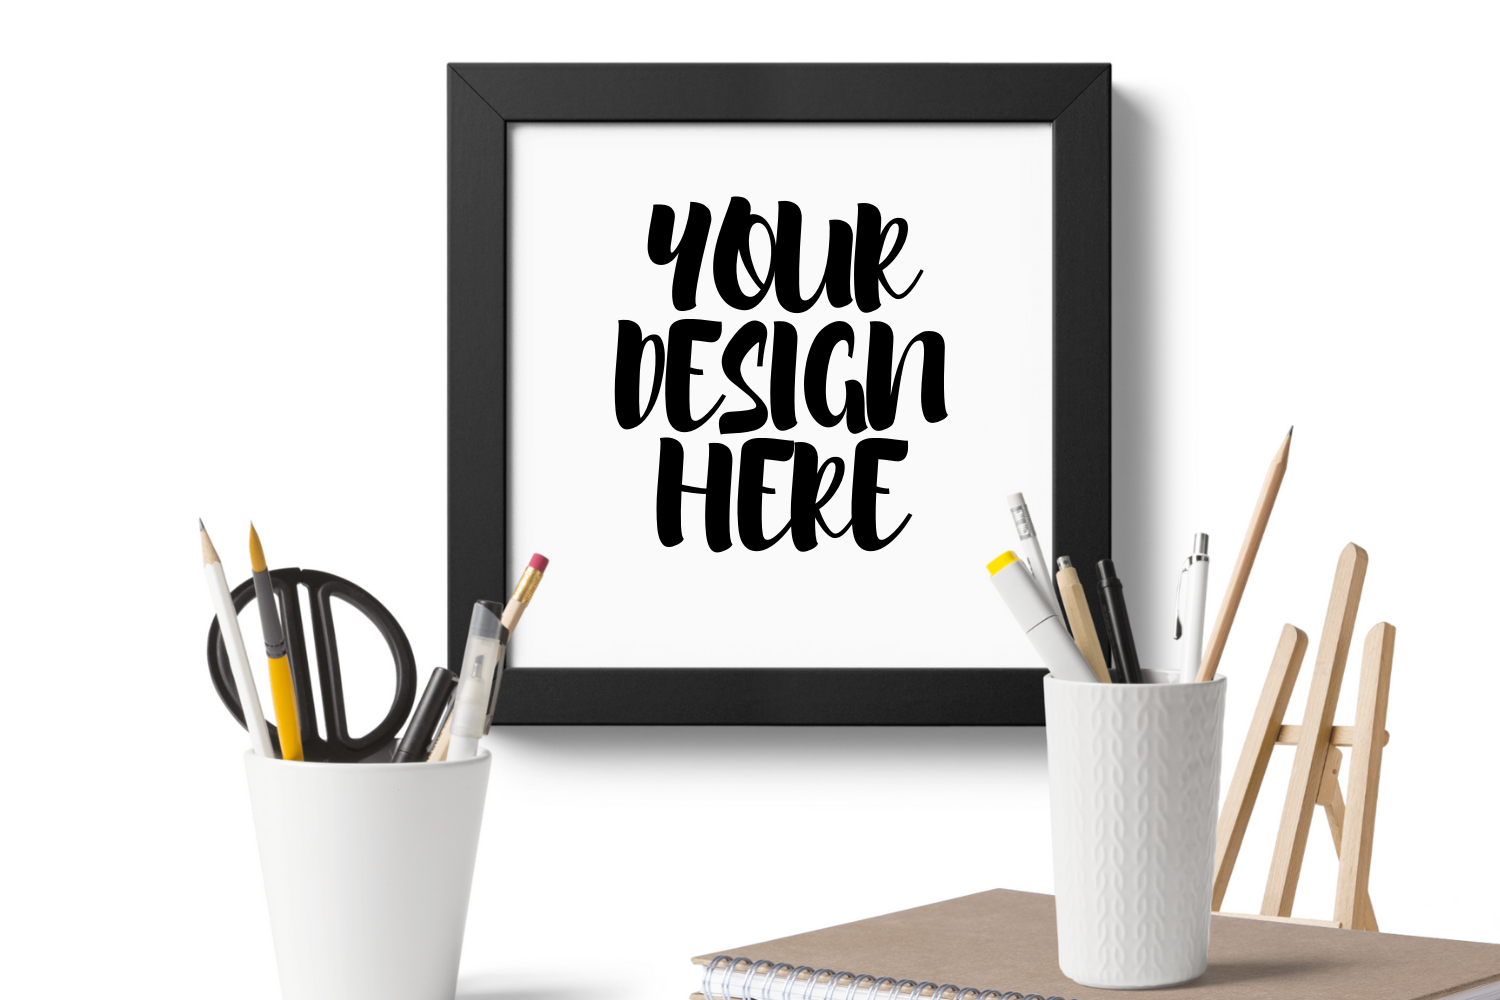 Wooden Square Frame Mockup With Stationary Scene example image 1